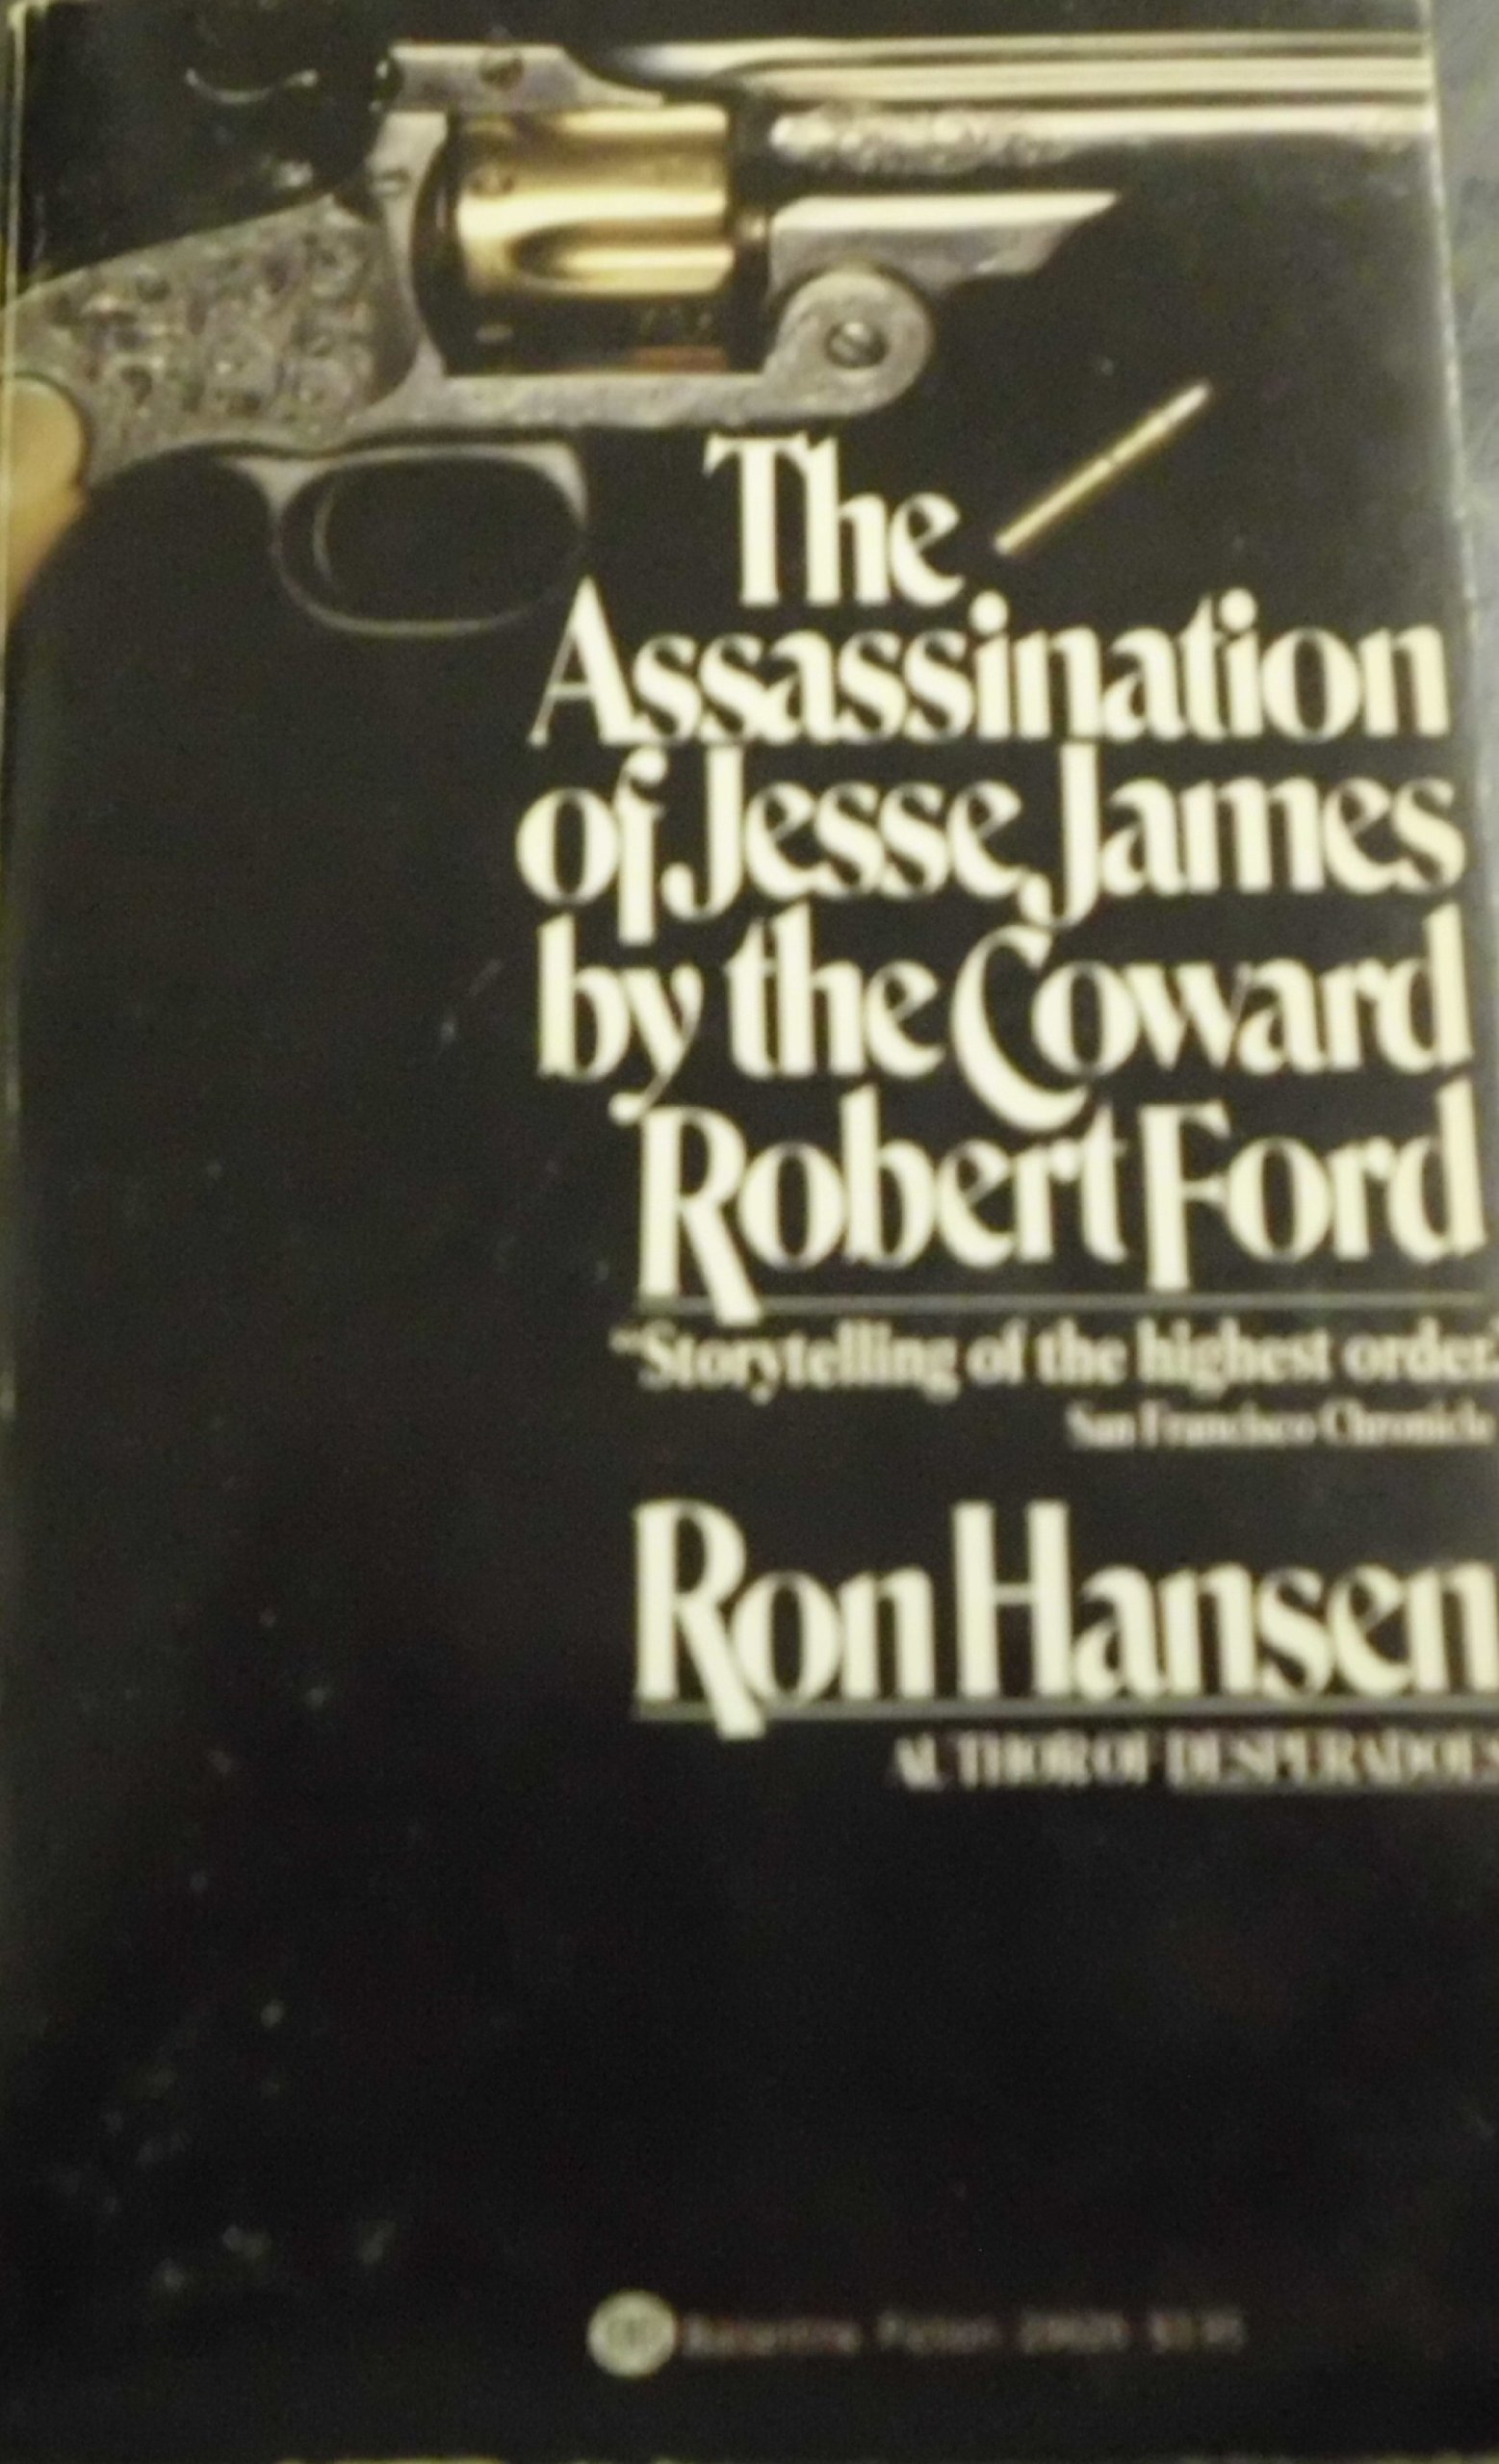 Assassination of Jesse James by the Coward Robert Ford ...